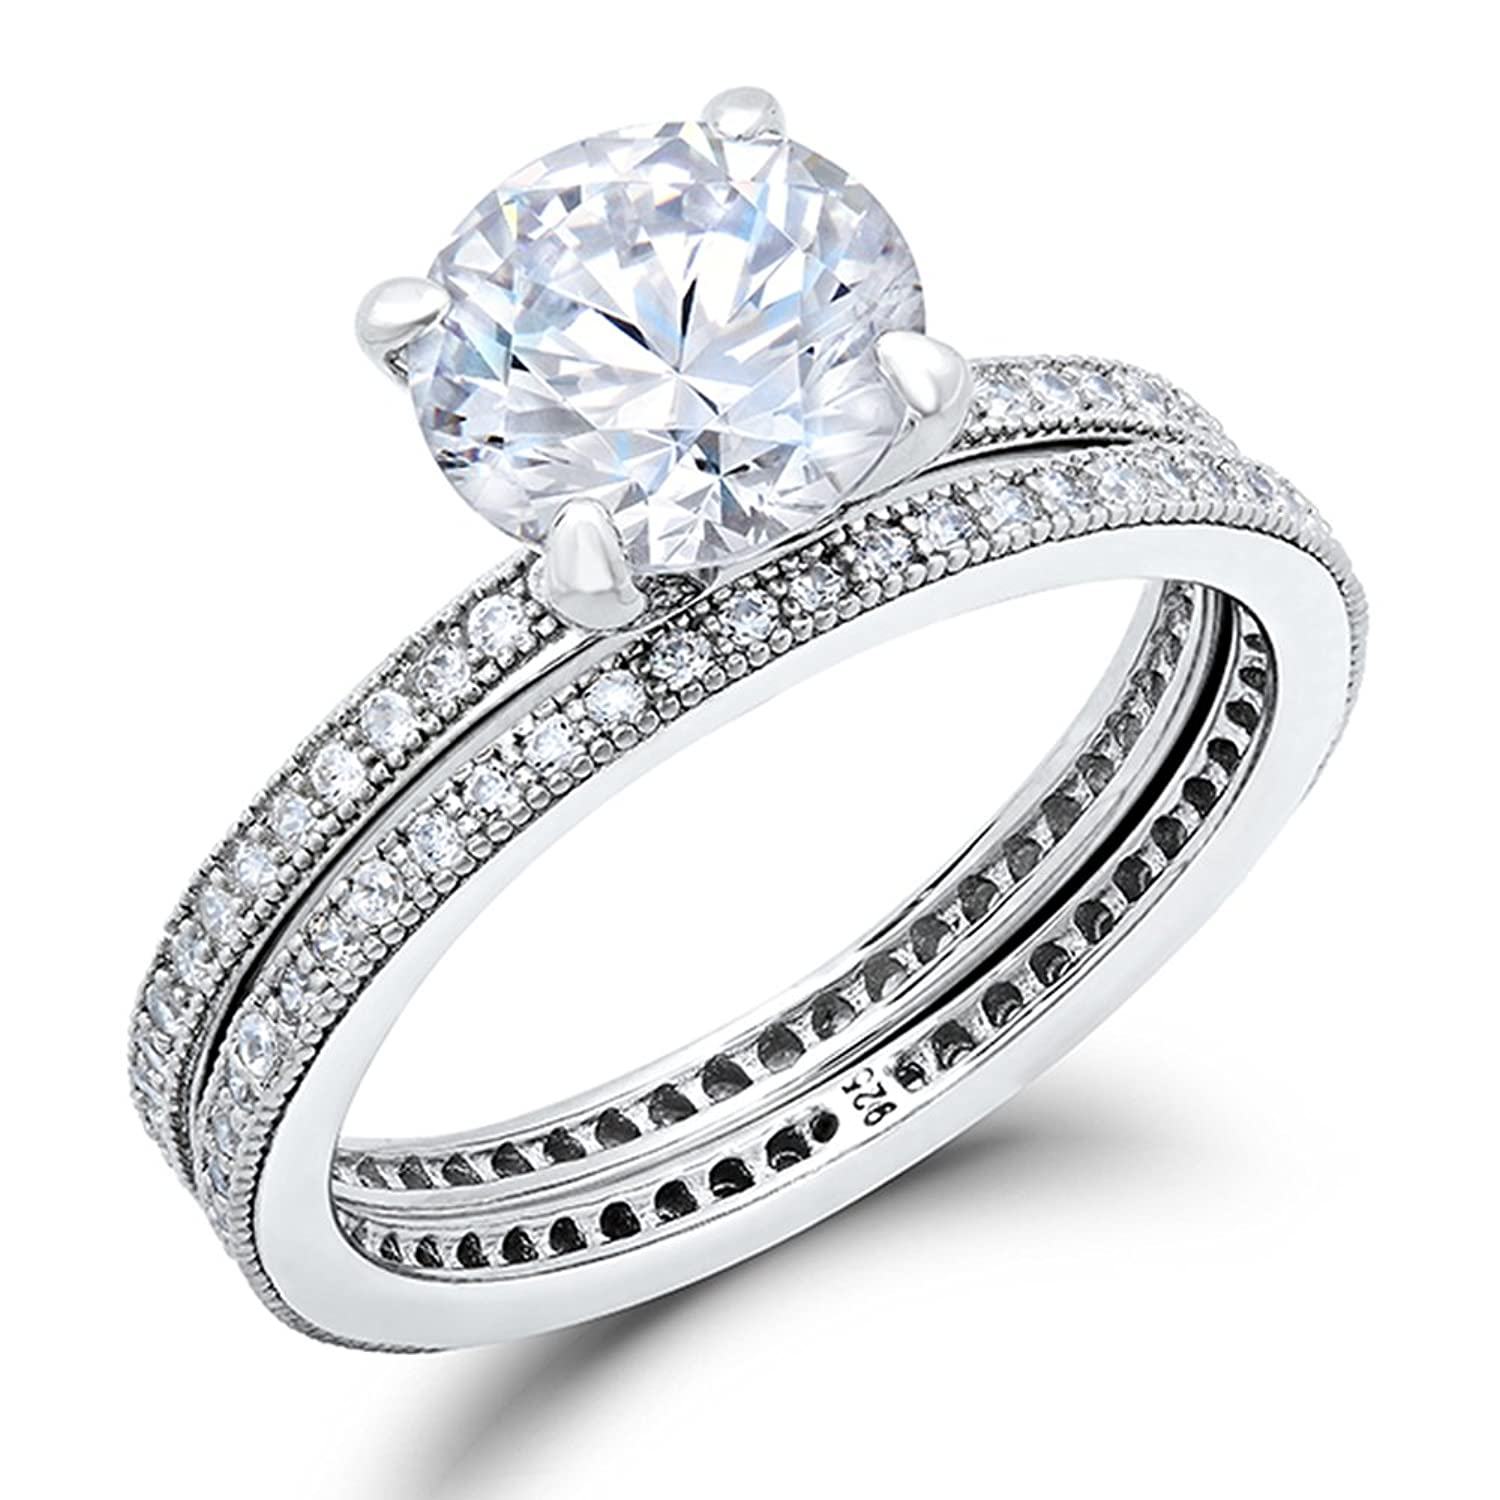 Sterling Silver Double Band Engagement Ring Set with Micro Pave Cubic Zirconia Stones